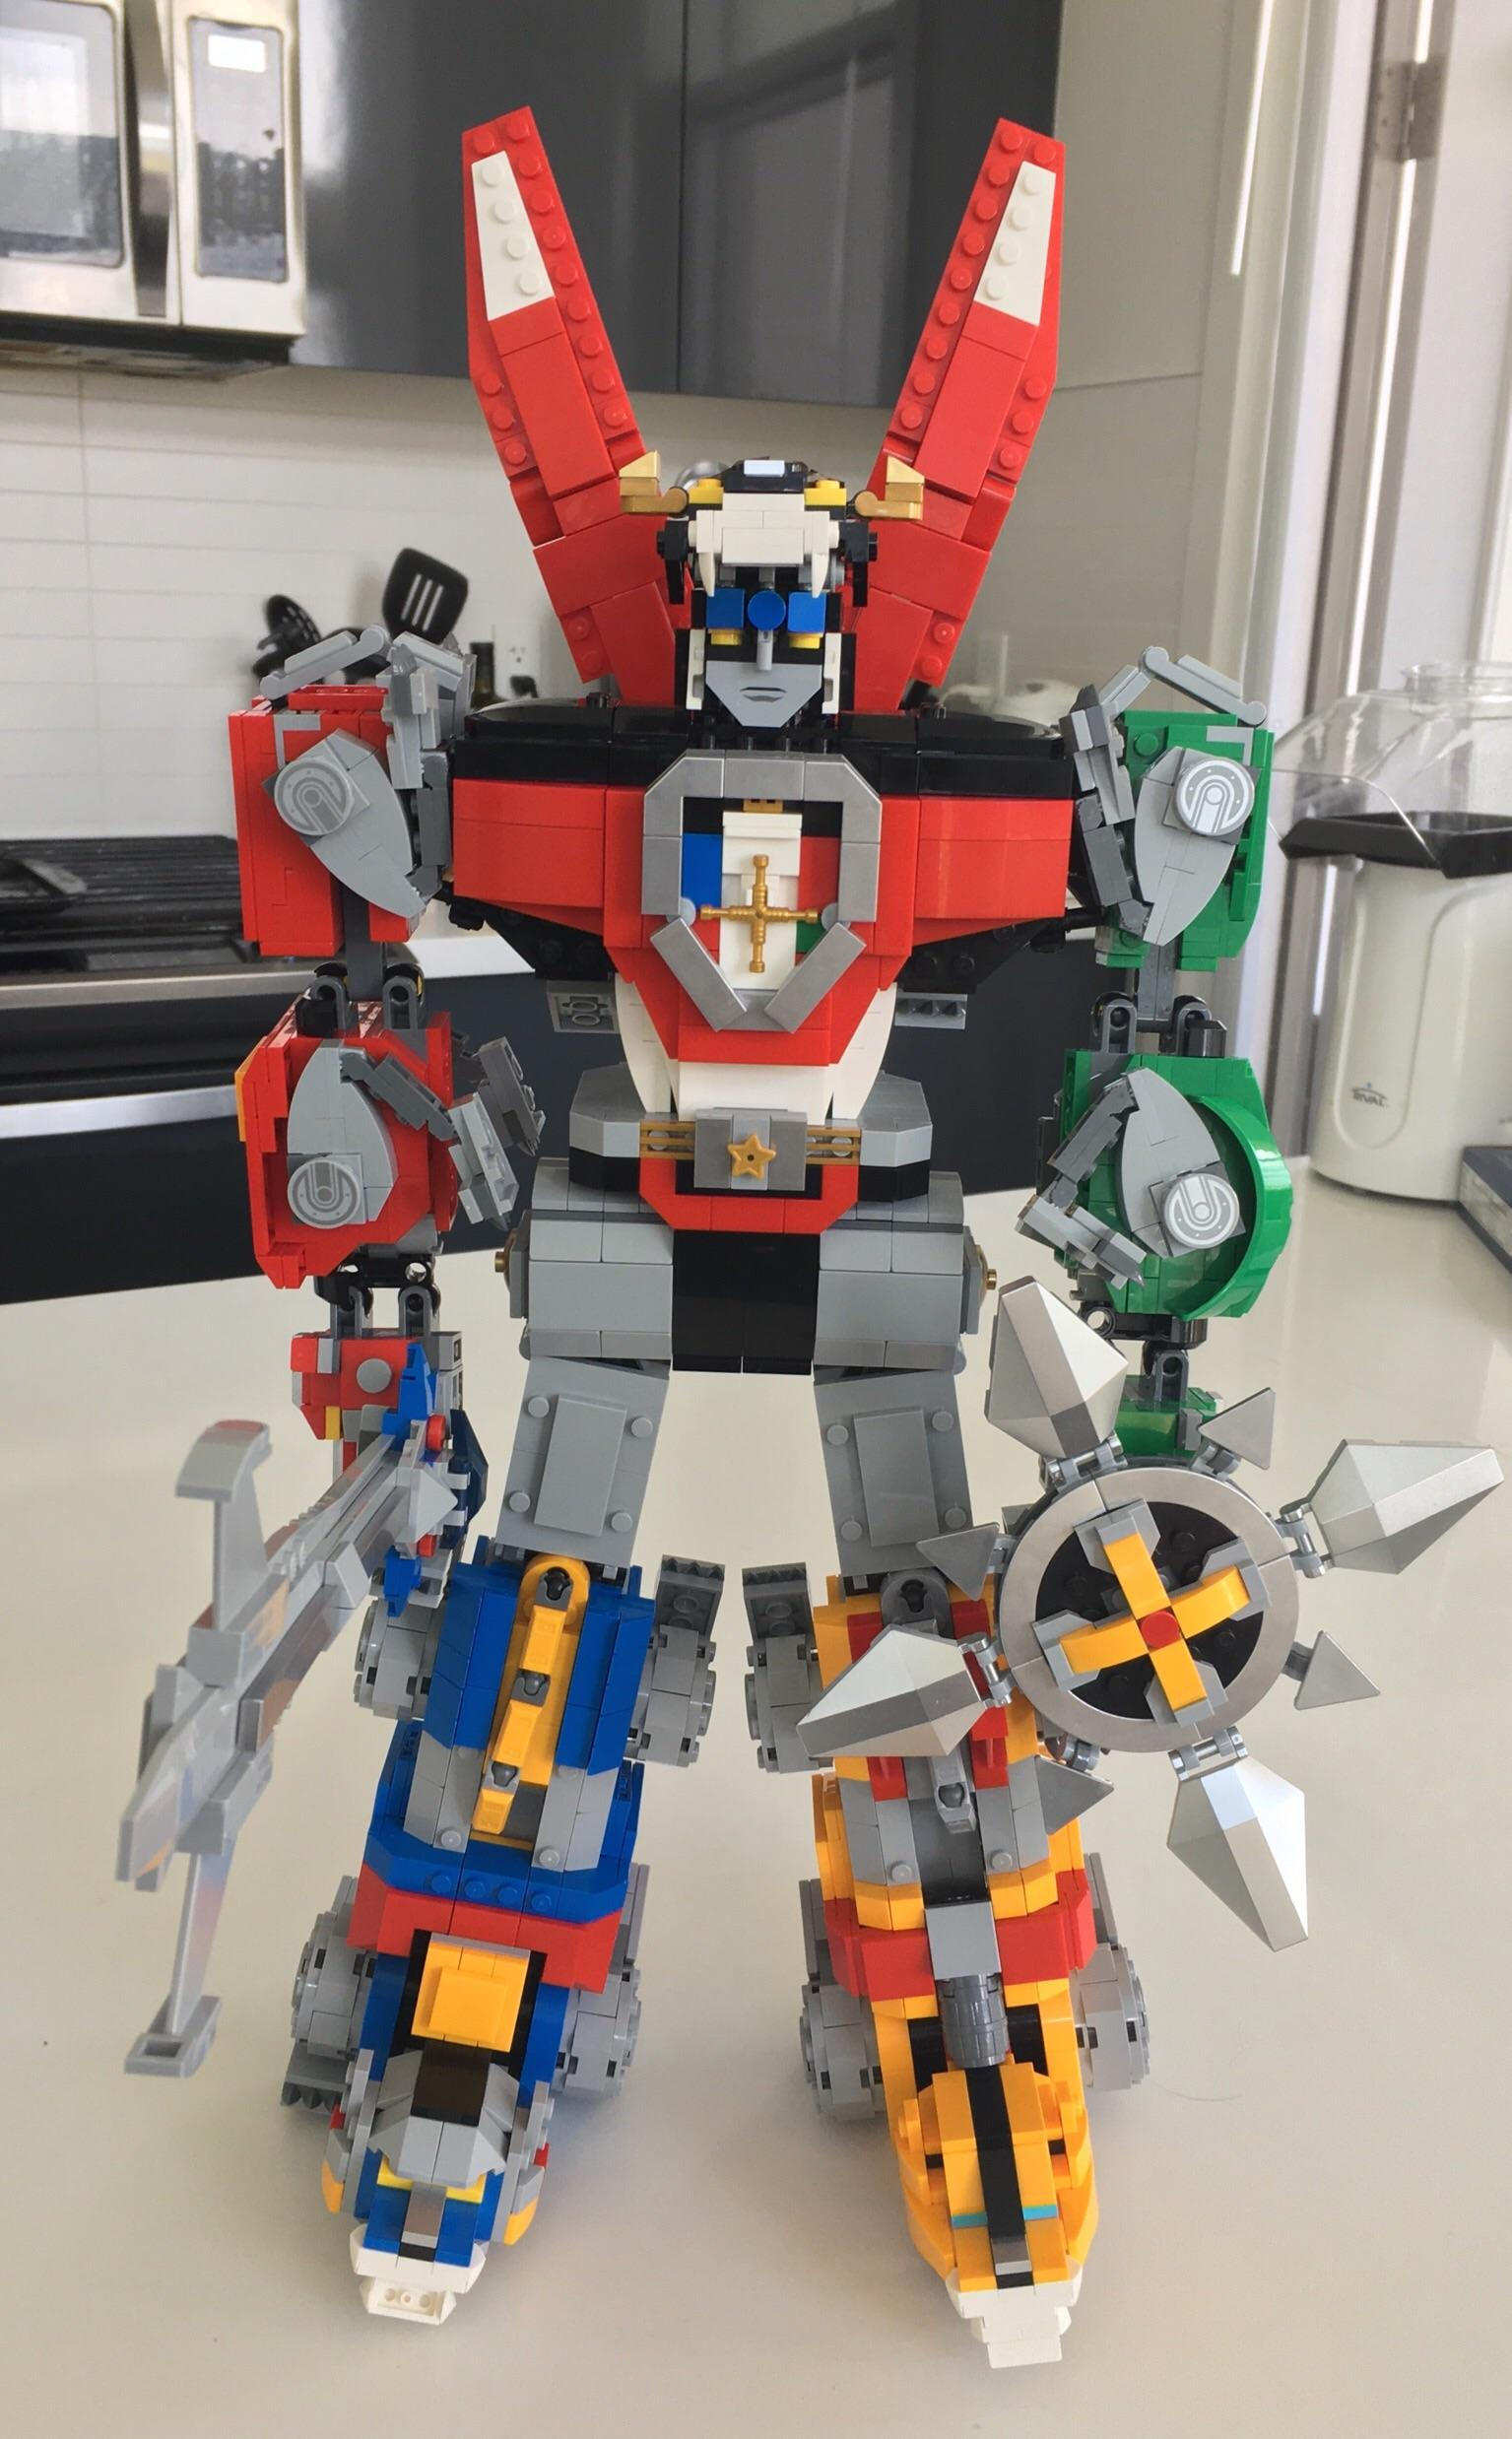 Live Wallpaper Iphone 6s Completed Lego Voltron Set And A Popcorn Maker Voltron